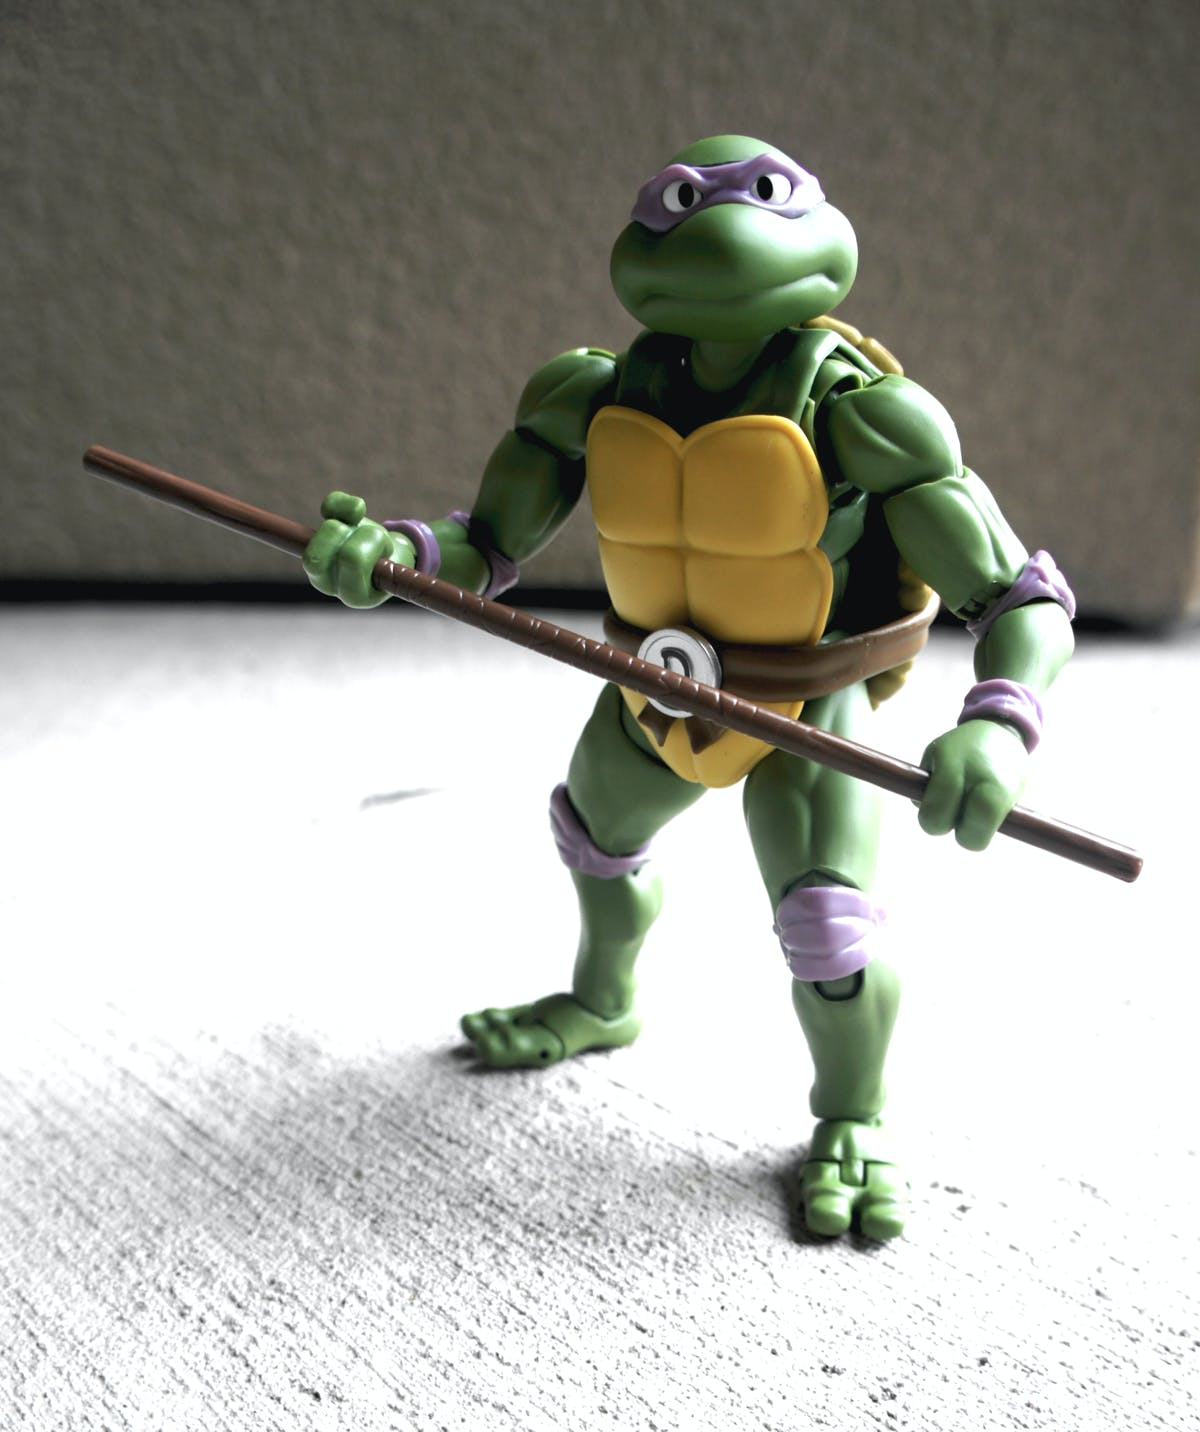 All pizzas aside, Donatello is deadly serious in battle.